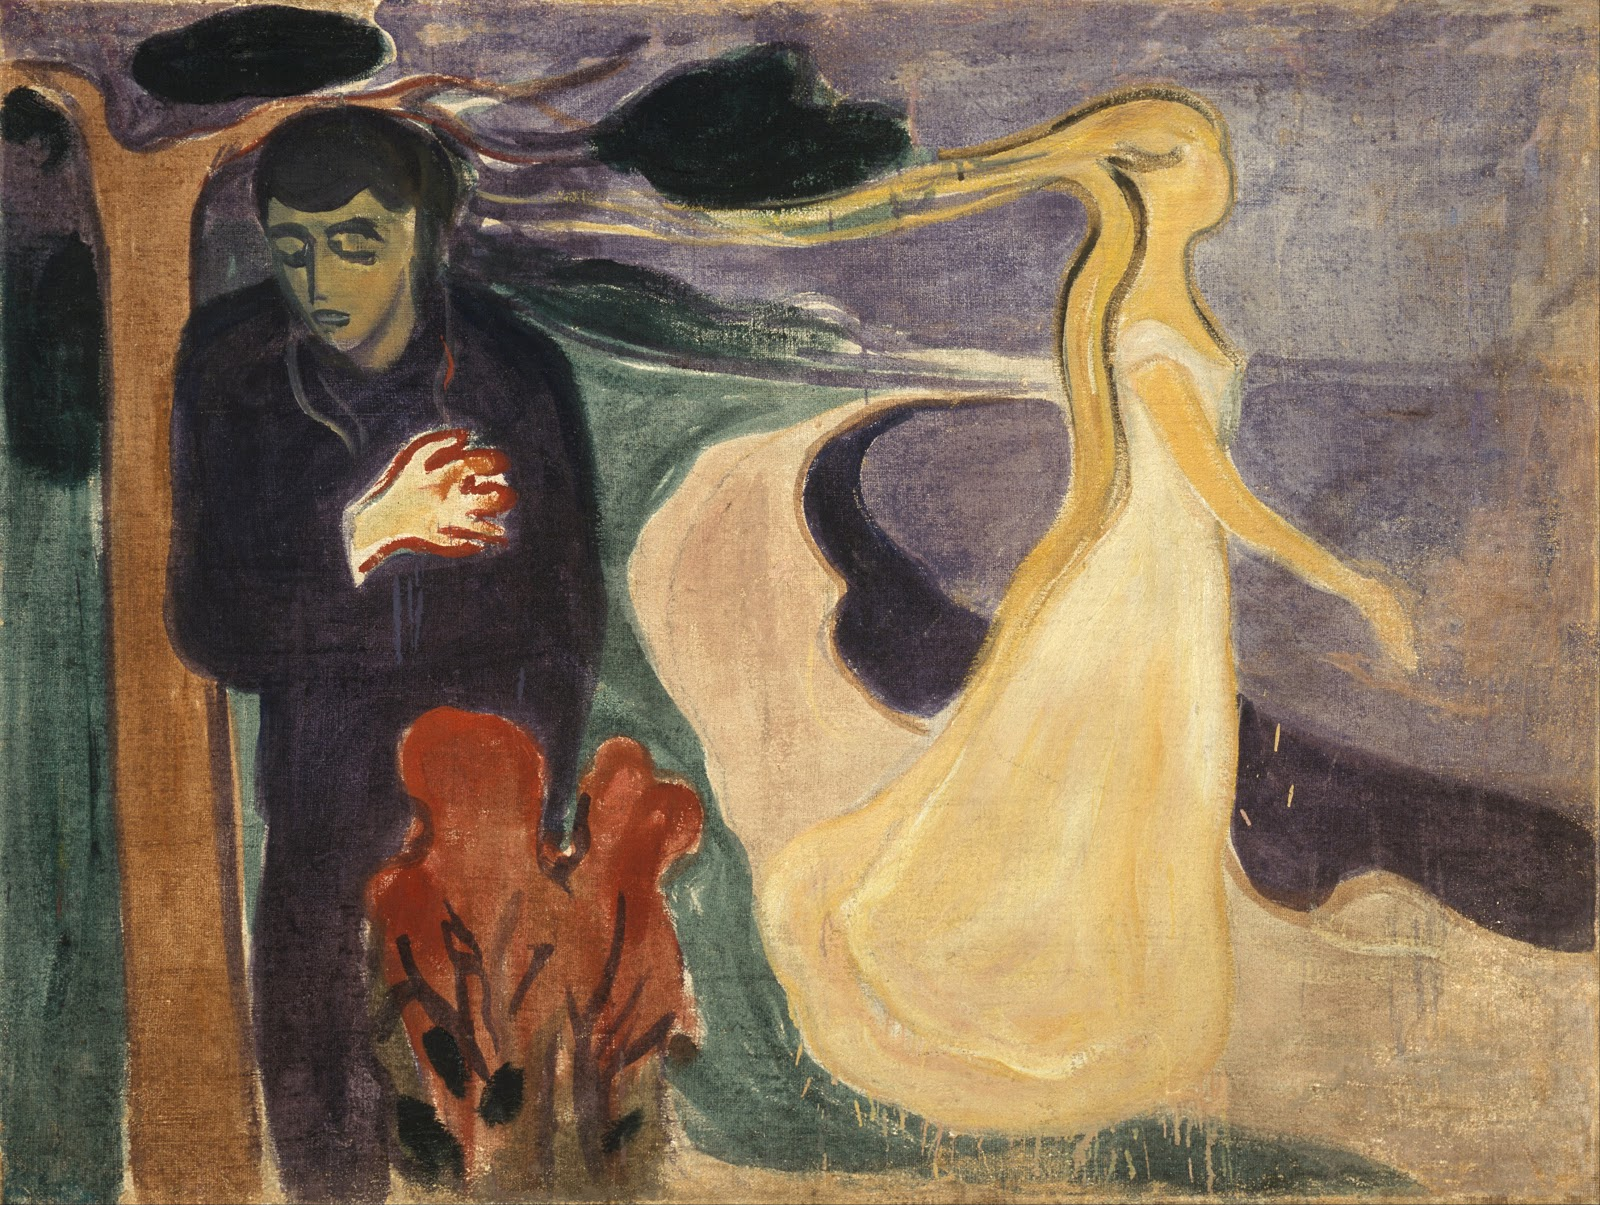 Edvard-Munch-Separation-1896